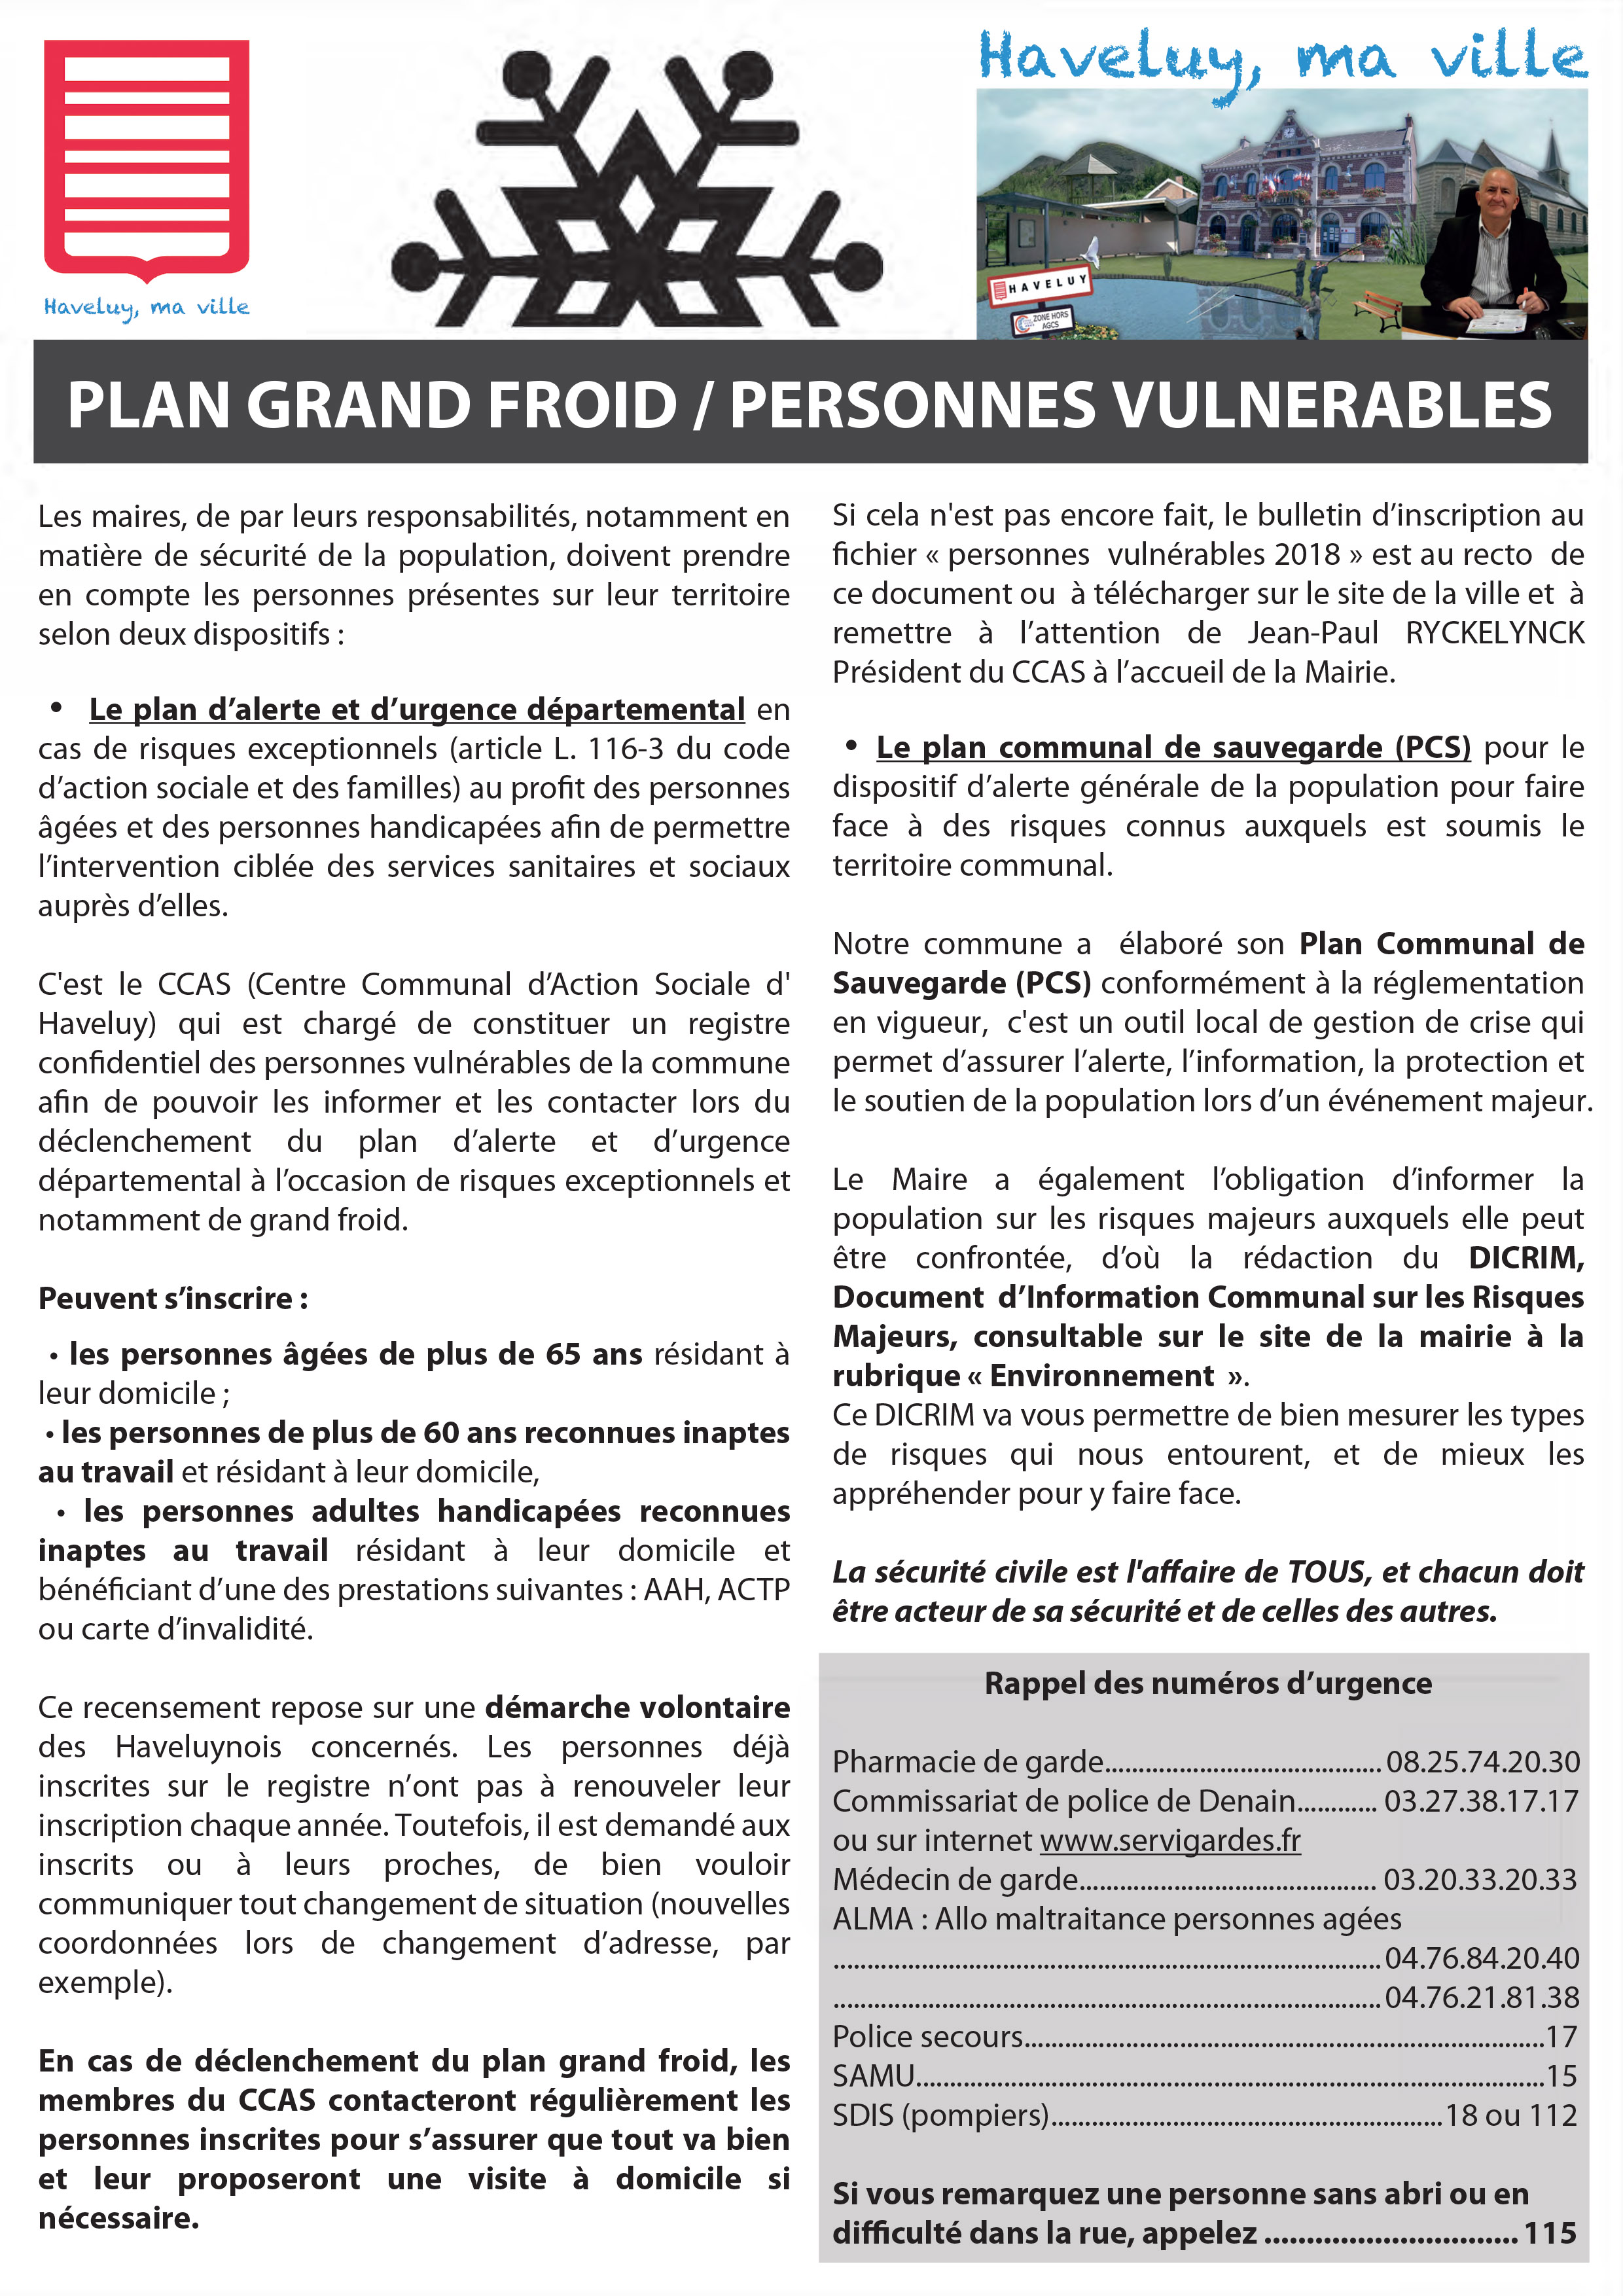 plan grand froid 2018